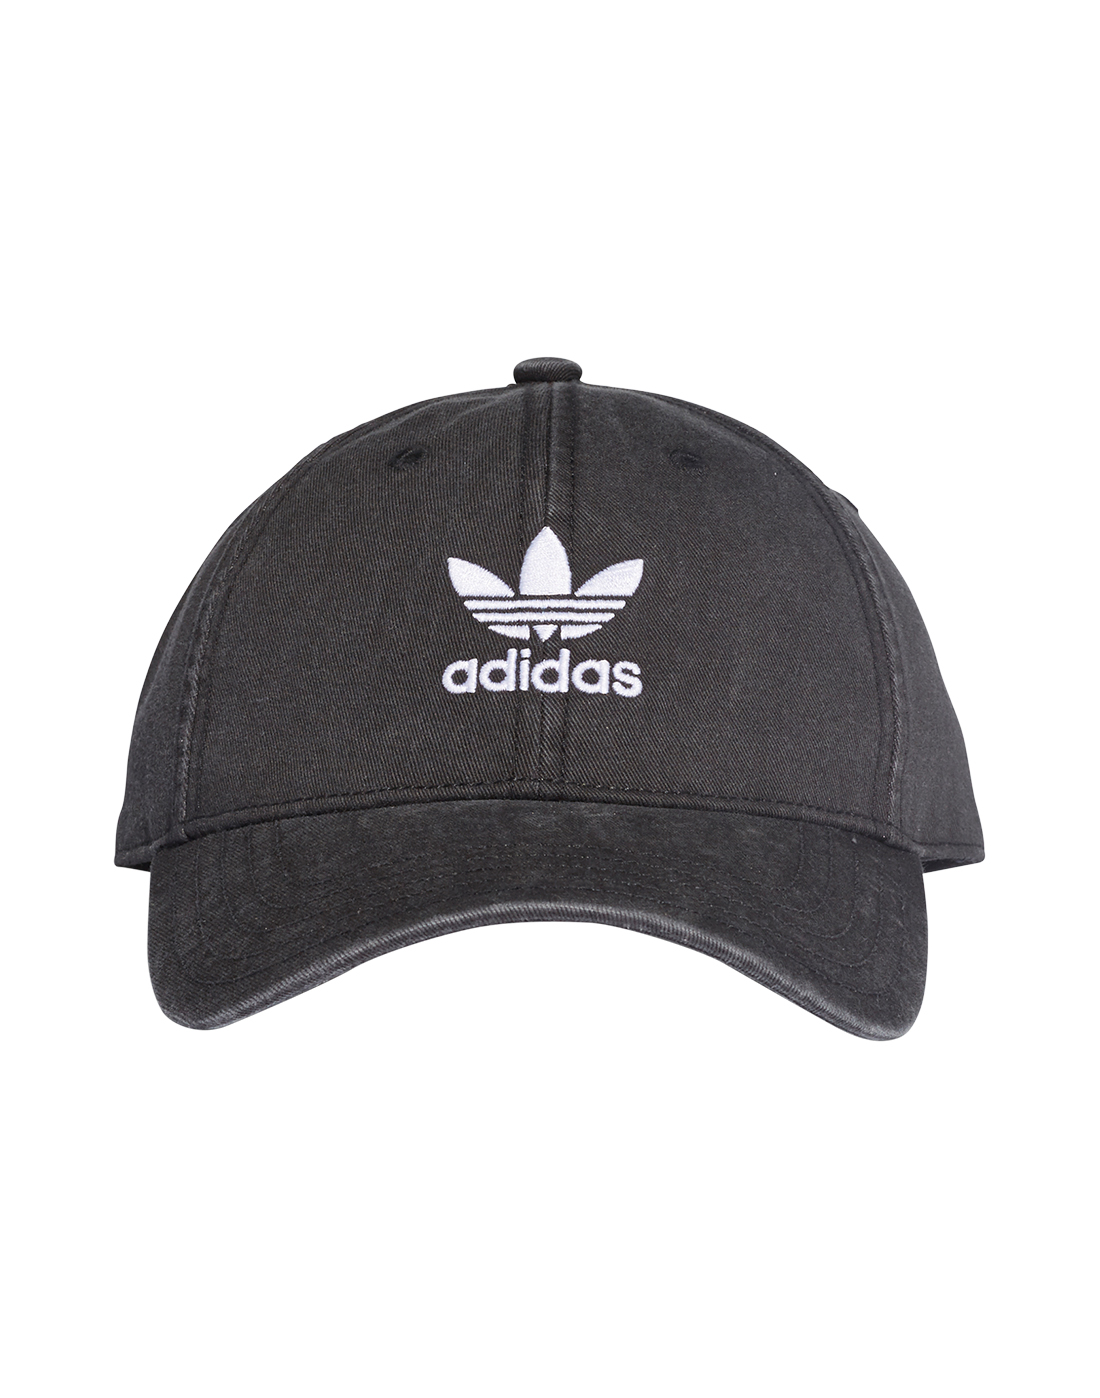 adidas Originals TREFOIL ADICOLOR WASHED CAP  c3ca30f2afa